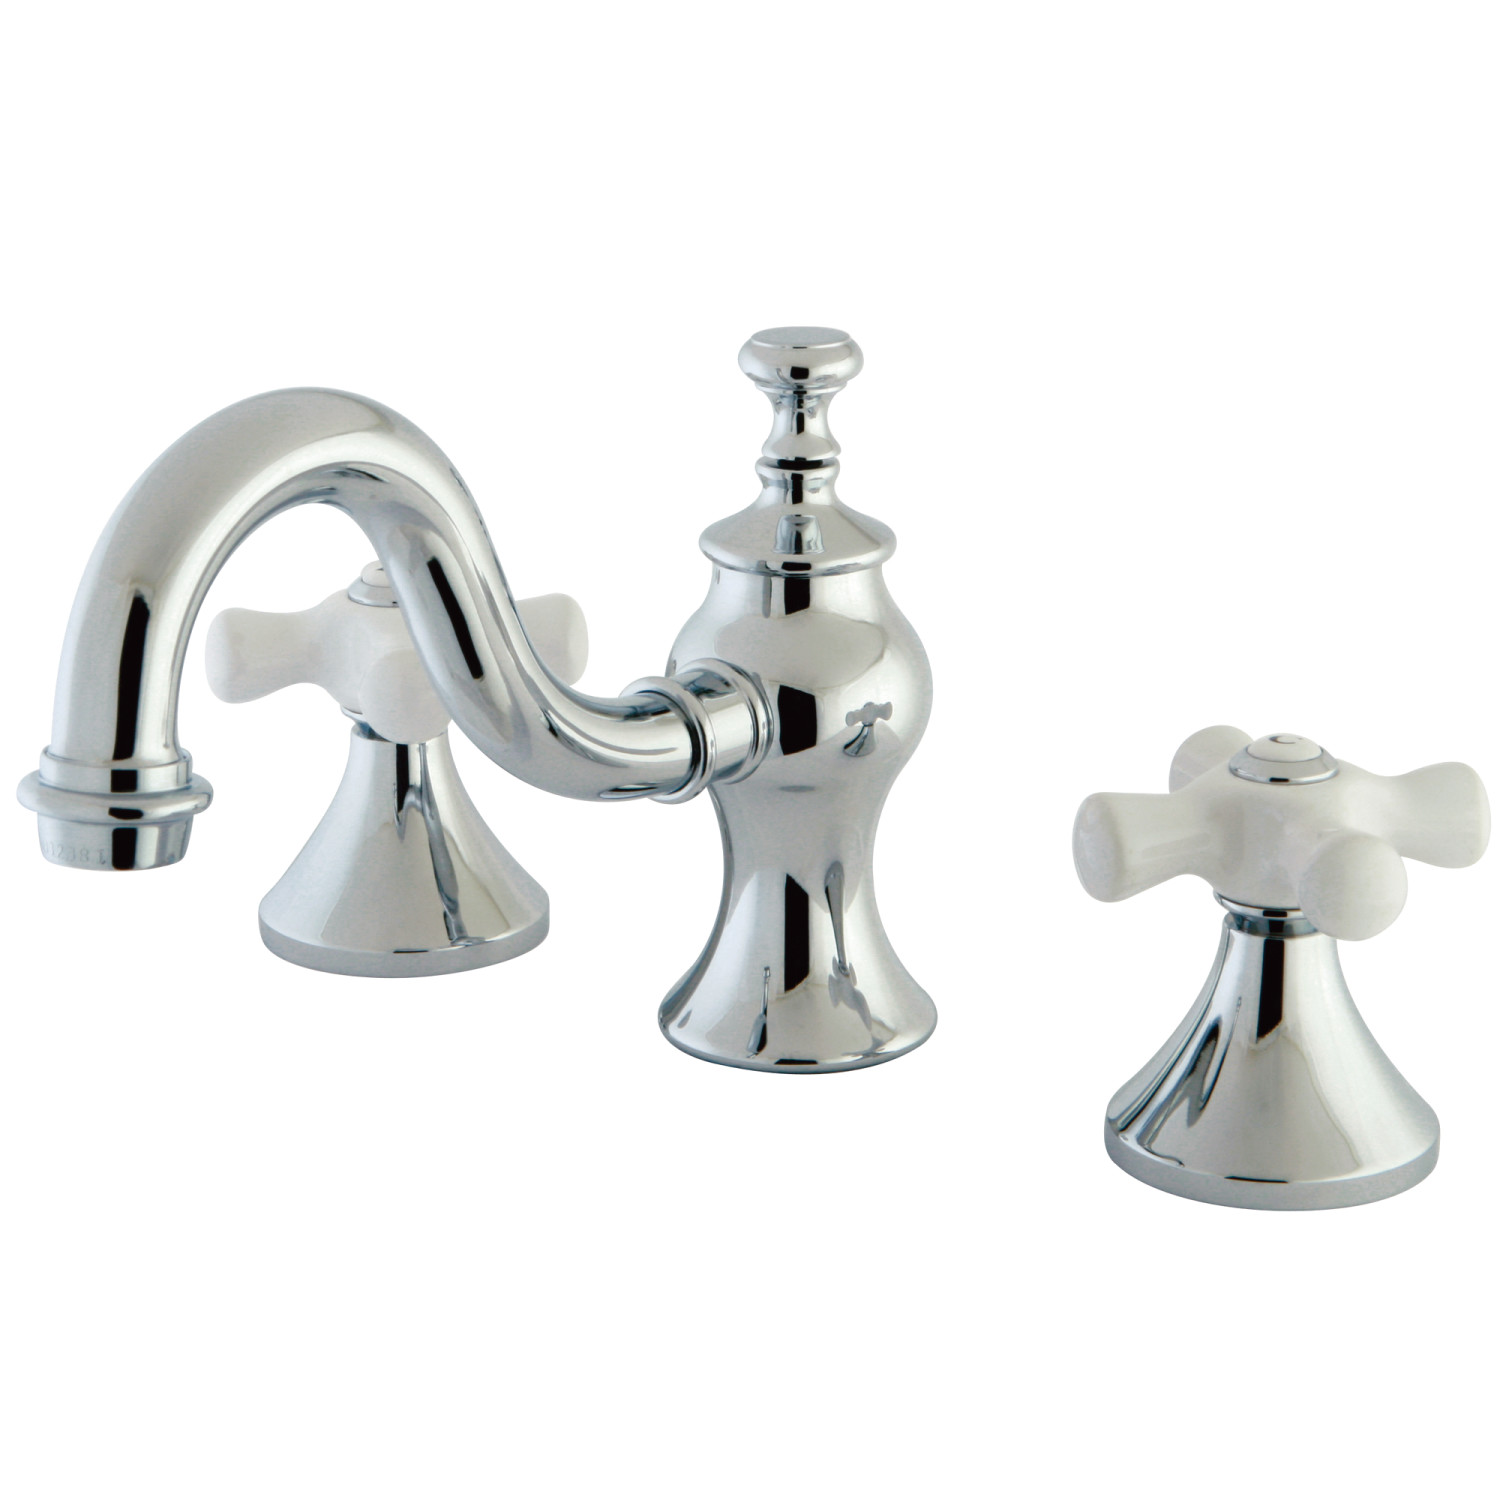 Traditional 2-Handle Three-Hole Deck Mounted Widespread Bathroom Faucet with Brass Pop-Up in Polished Chrome